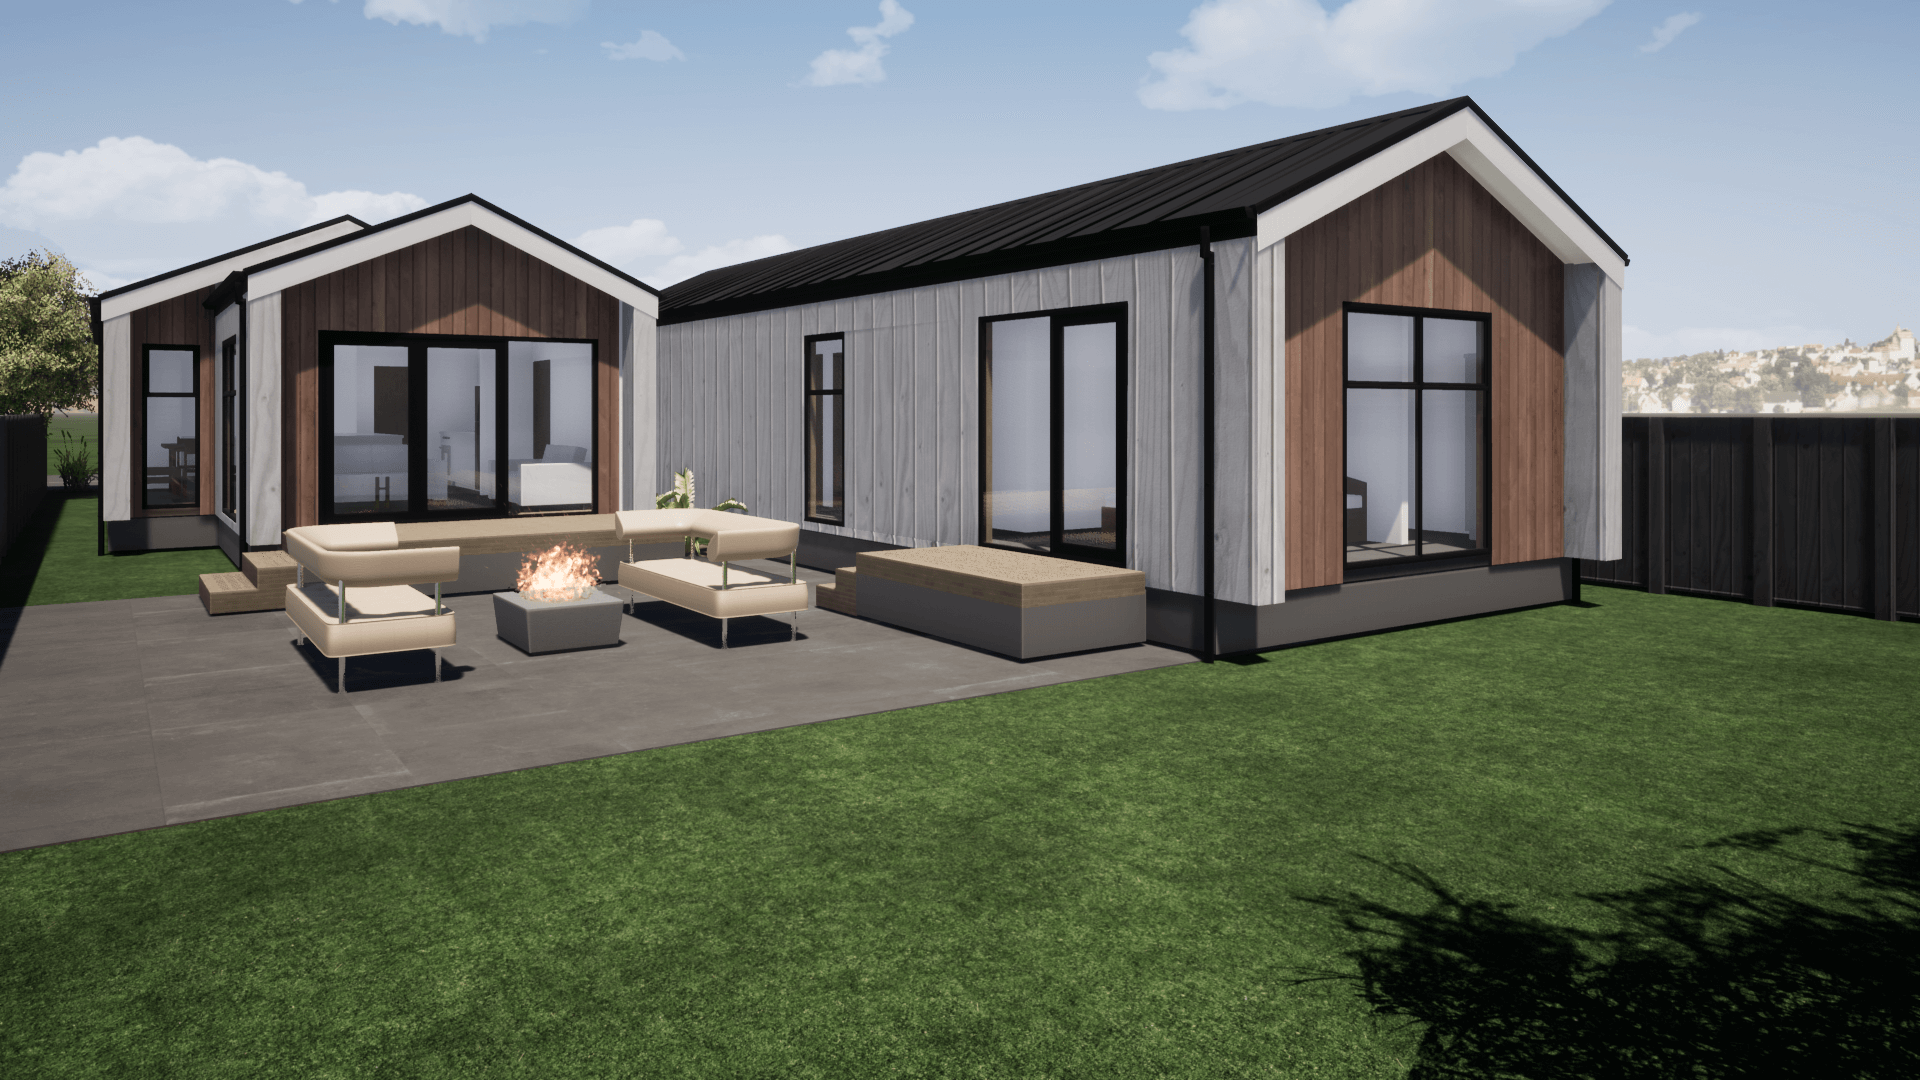 Three bedroom modern home design for sale New Zealand